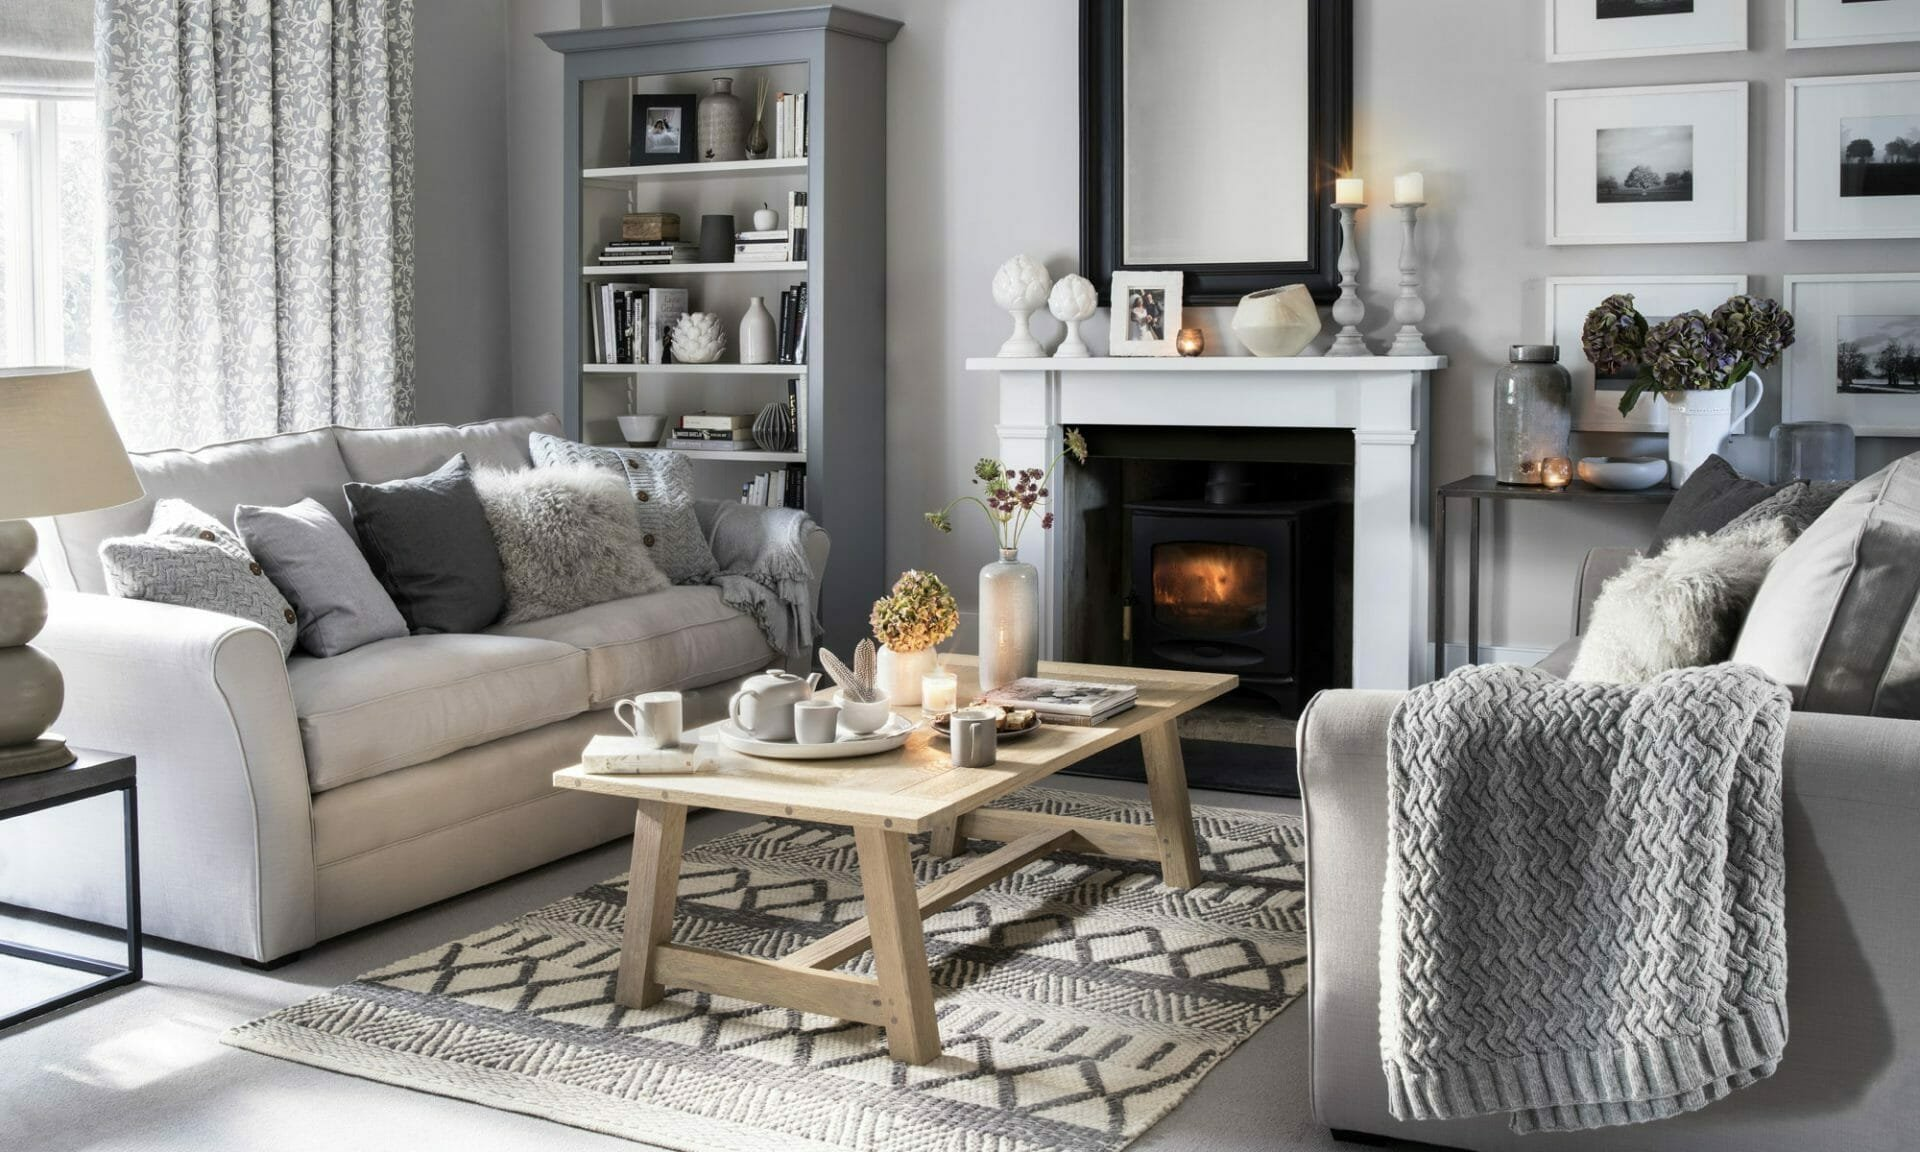 Cozy neutral gray living room winter decor ideas